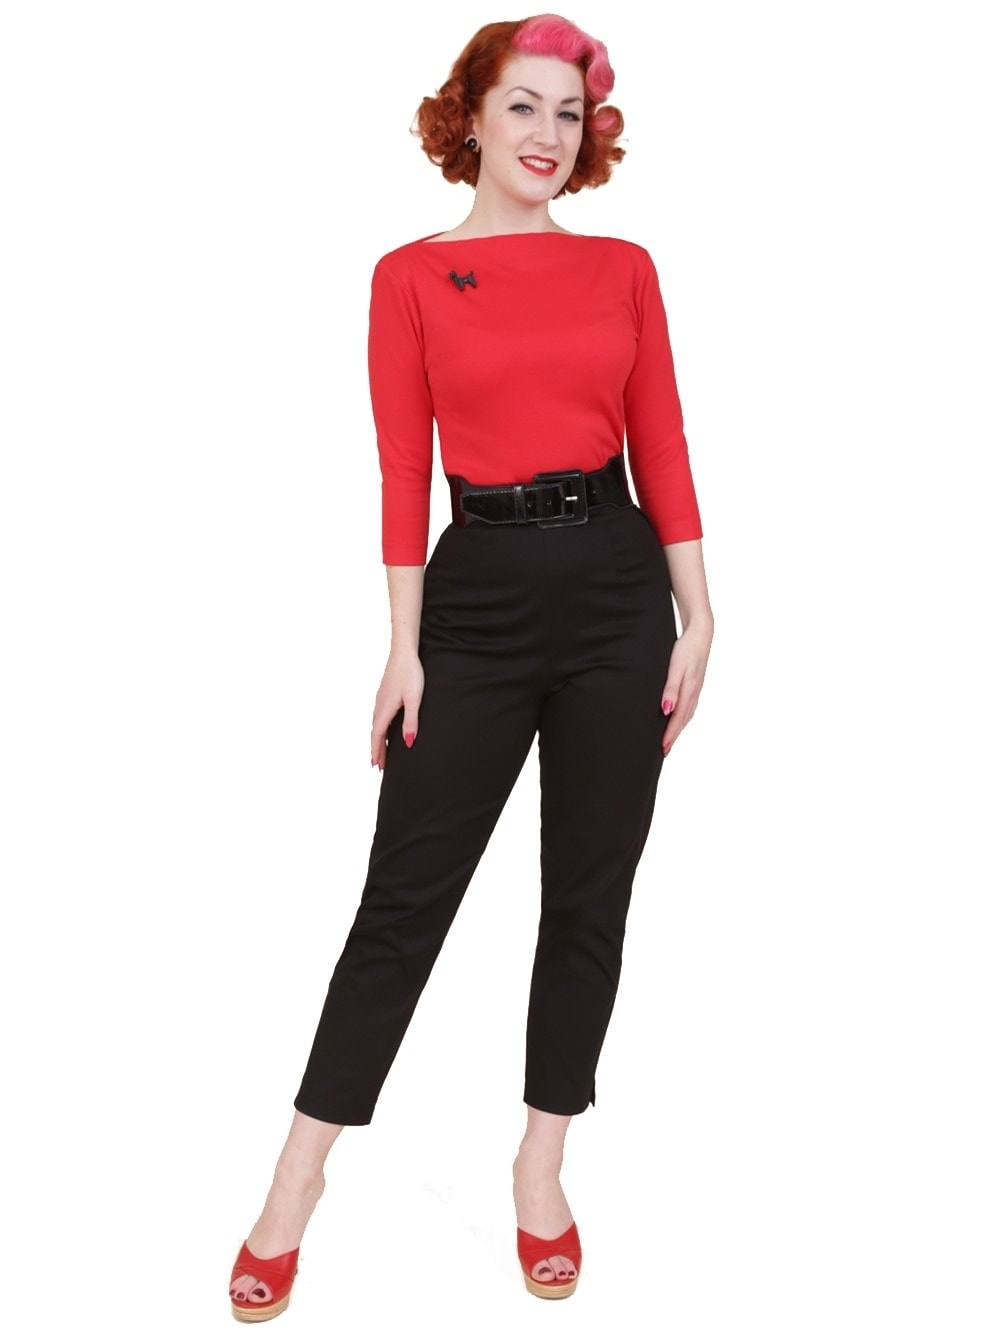 I ordered the white top pictured with the pedal pushers on the Dillards website, but the cut was baggy and unflattering on me, and I didn't love the material. I don't feel it's worth the price, honestly, so I pulled this black top out of my closet instead.